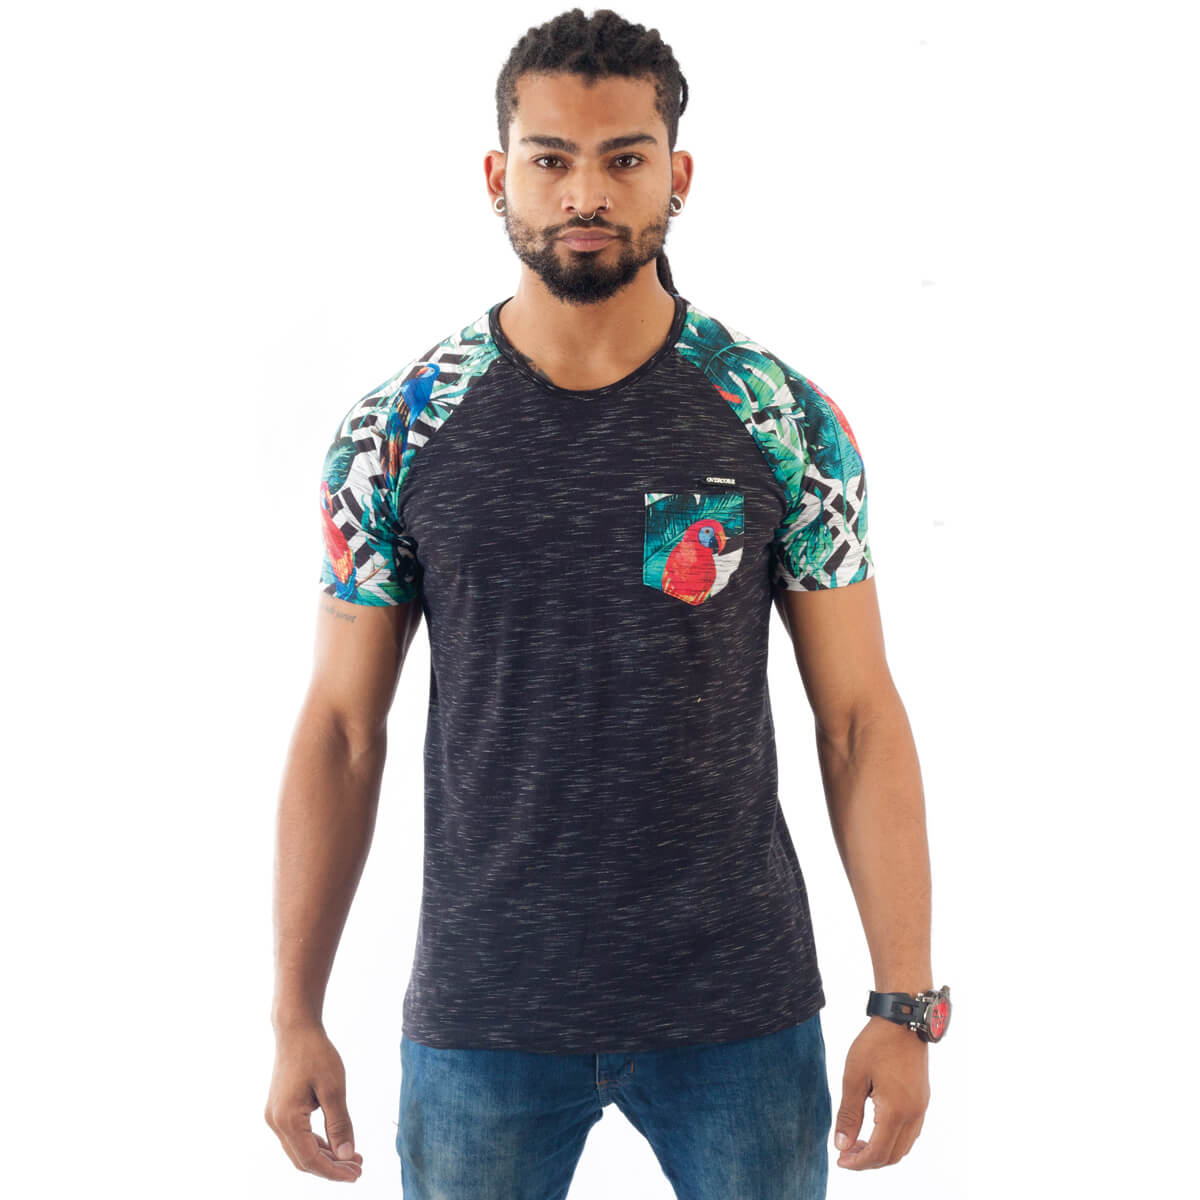 Camiseta Masculina Estampada Tropical